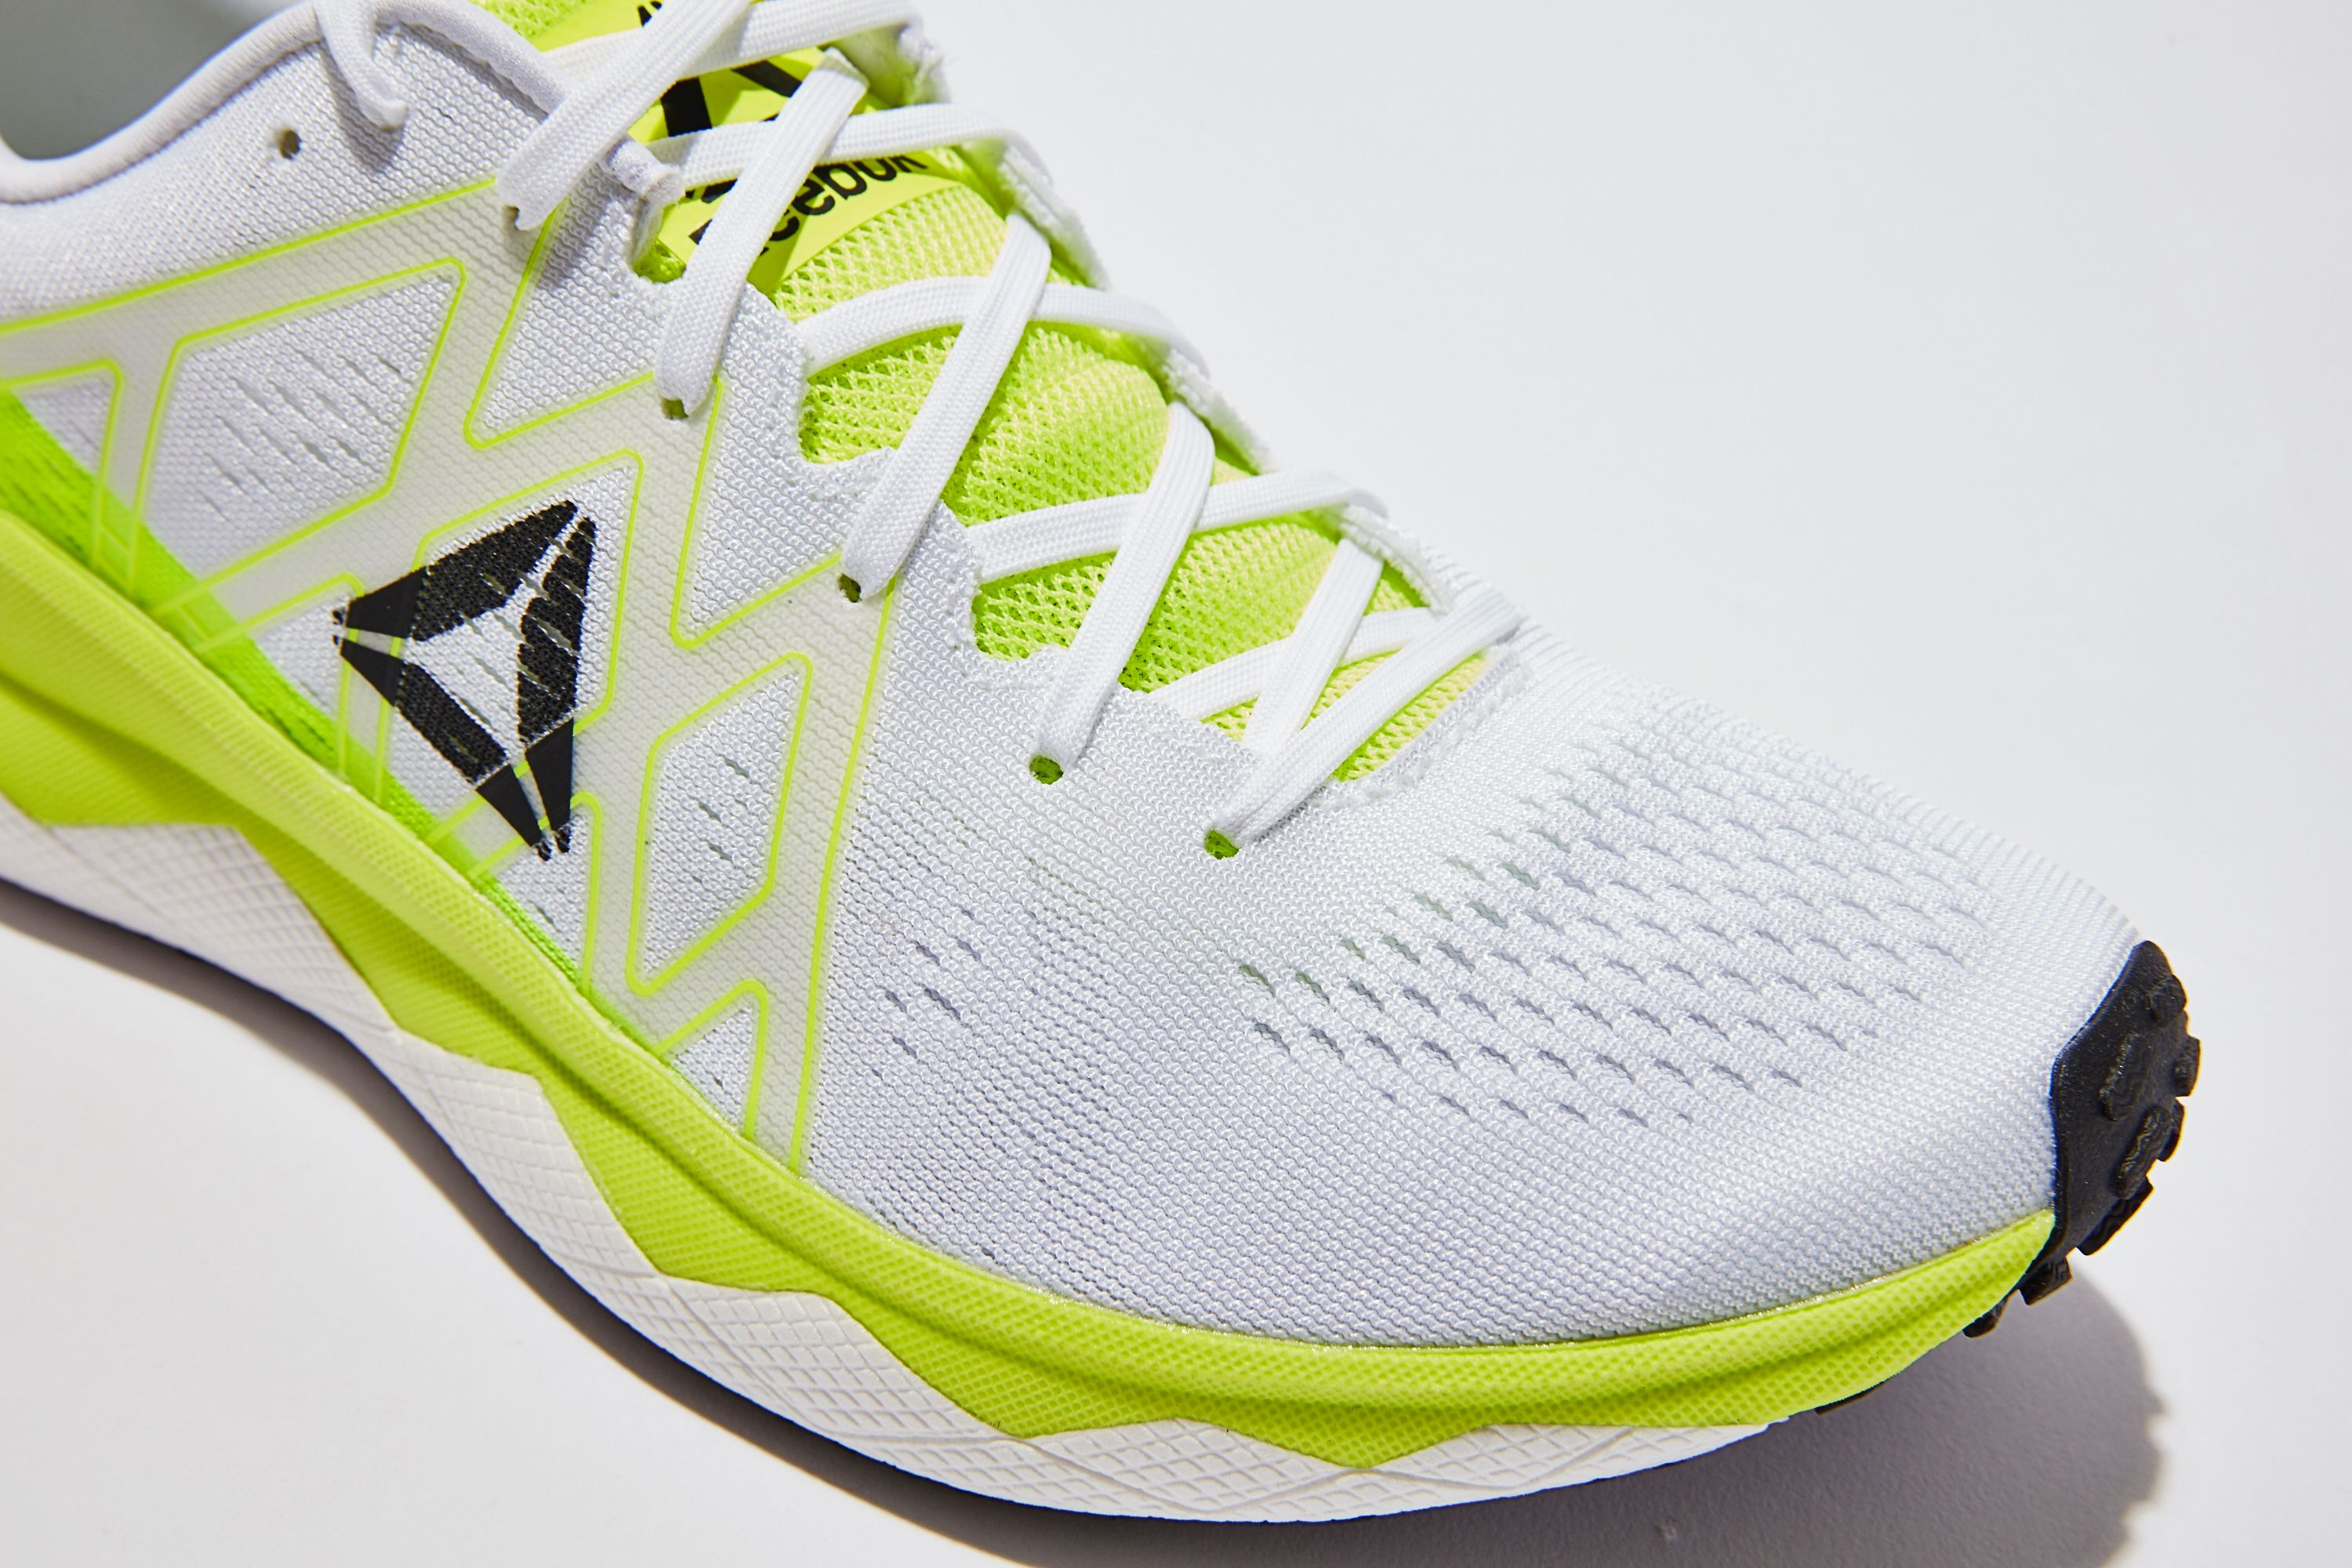 Reebok Floatride Run Fast Review - Lightweight Running Shoes 0bb1bfab2